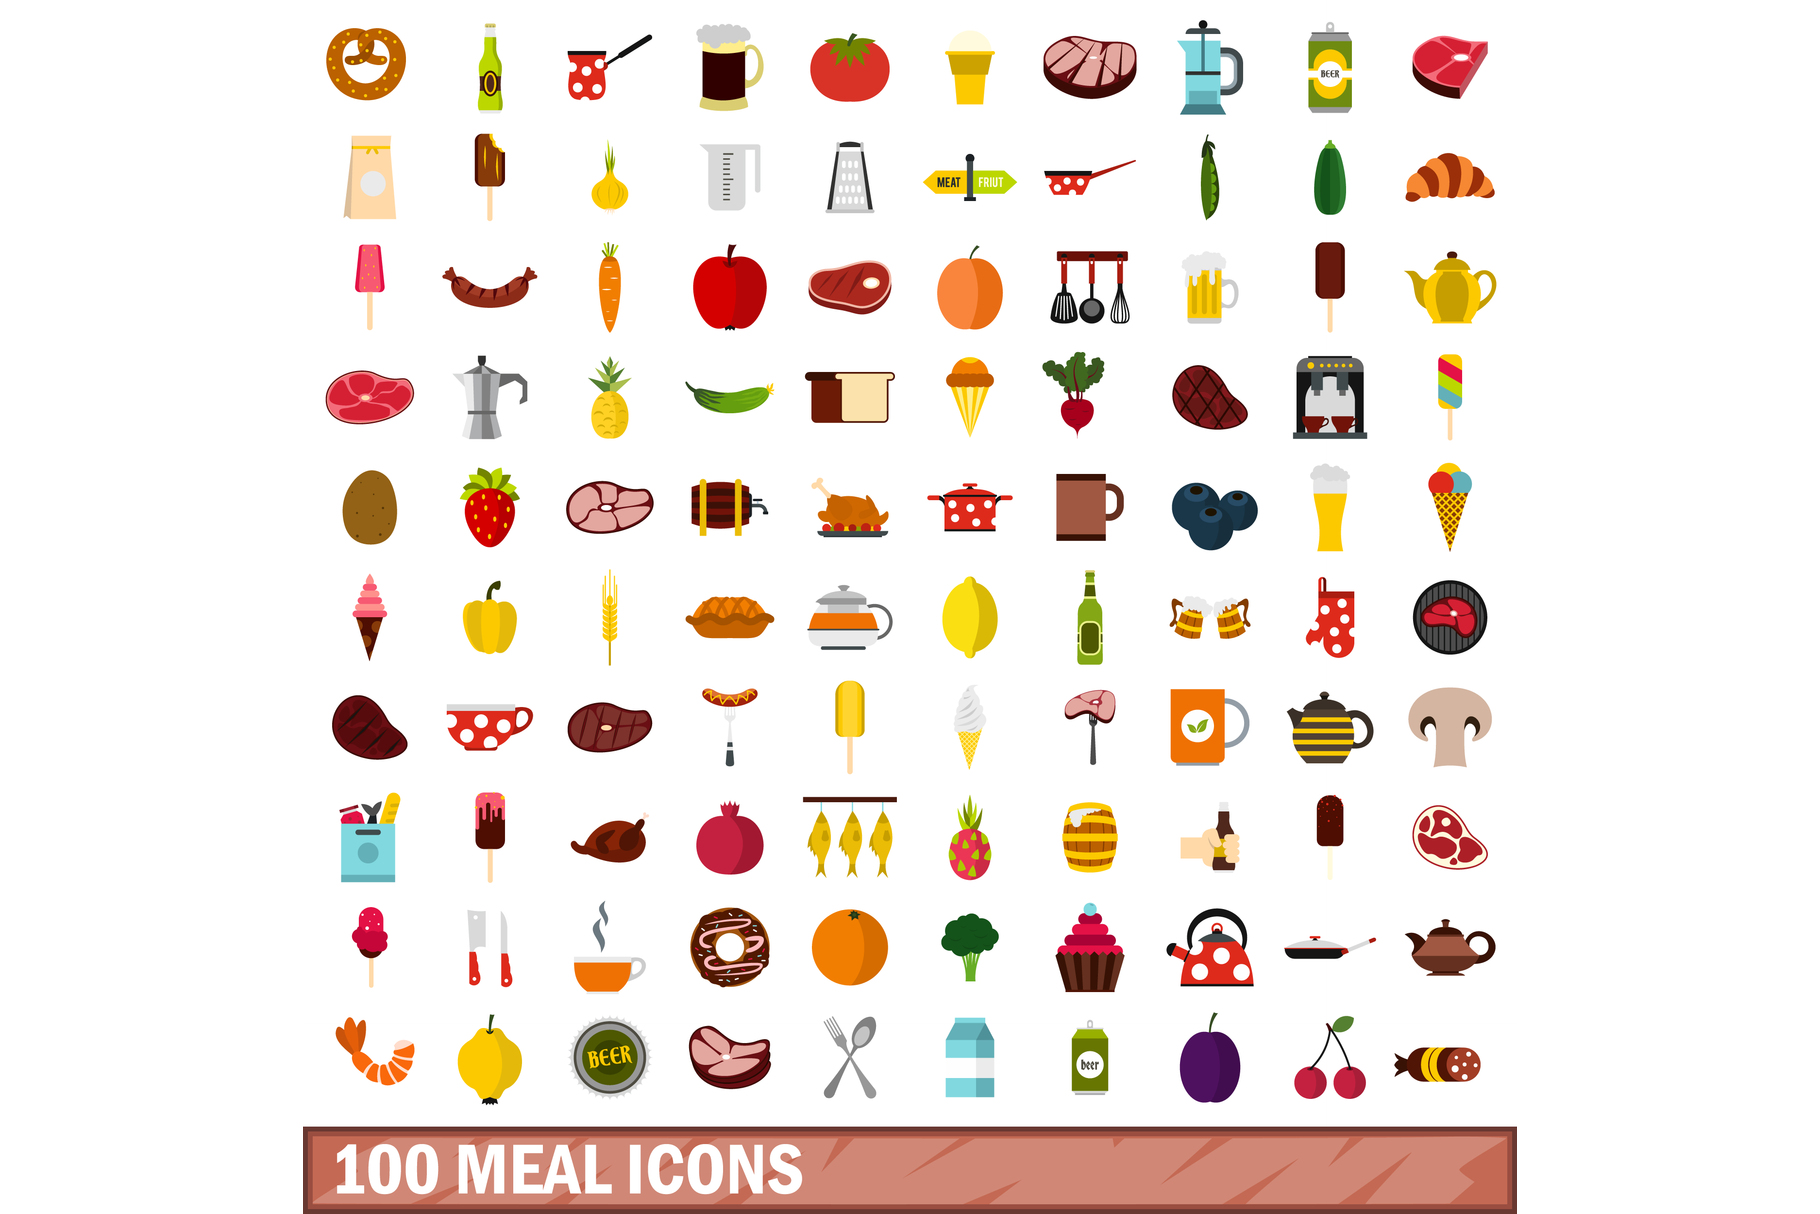 100 meal icons set, flat style example image 1